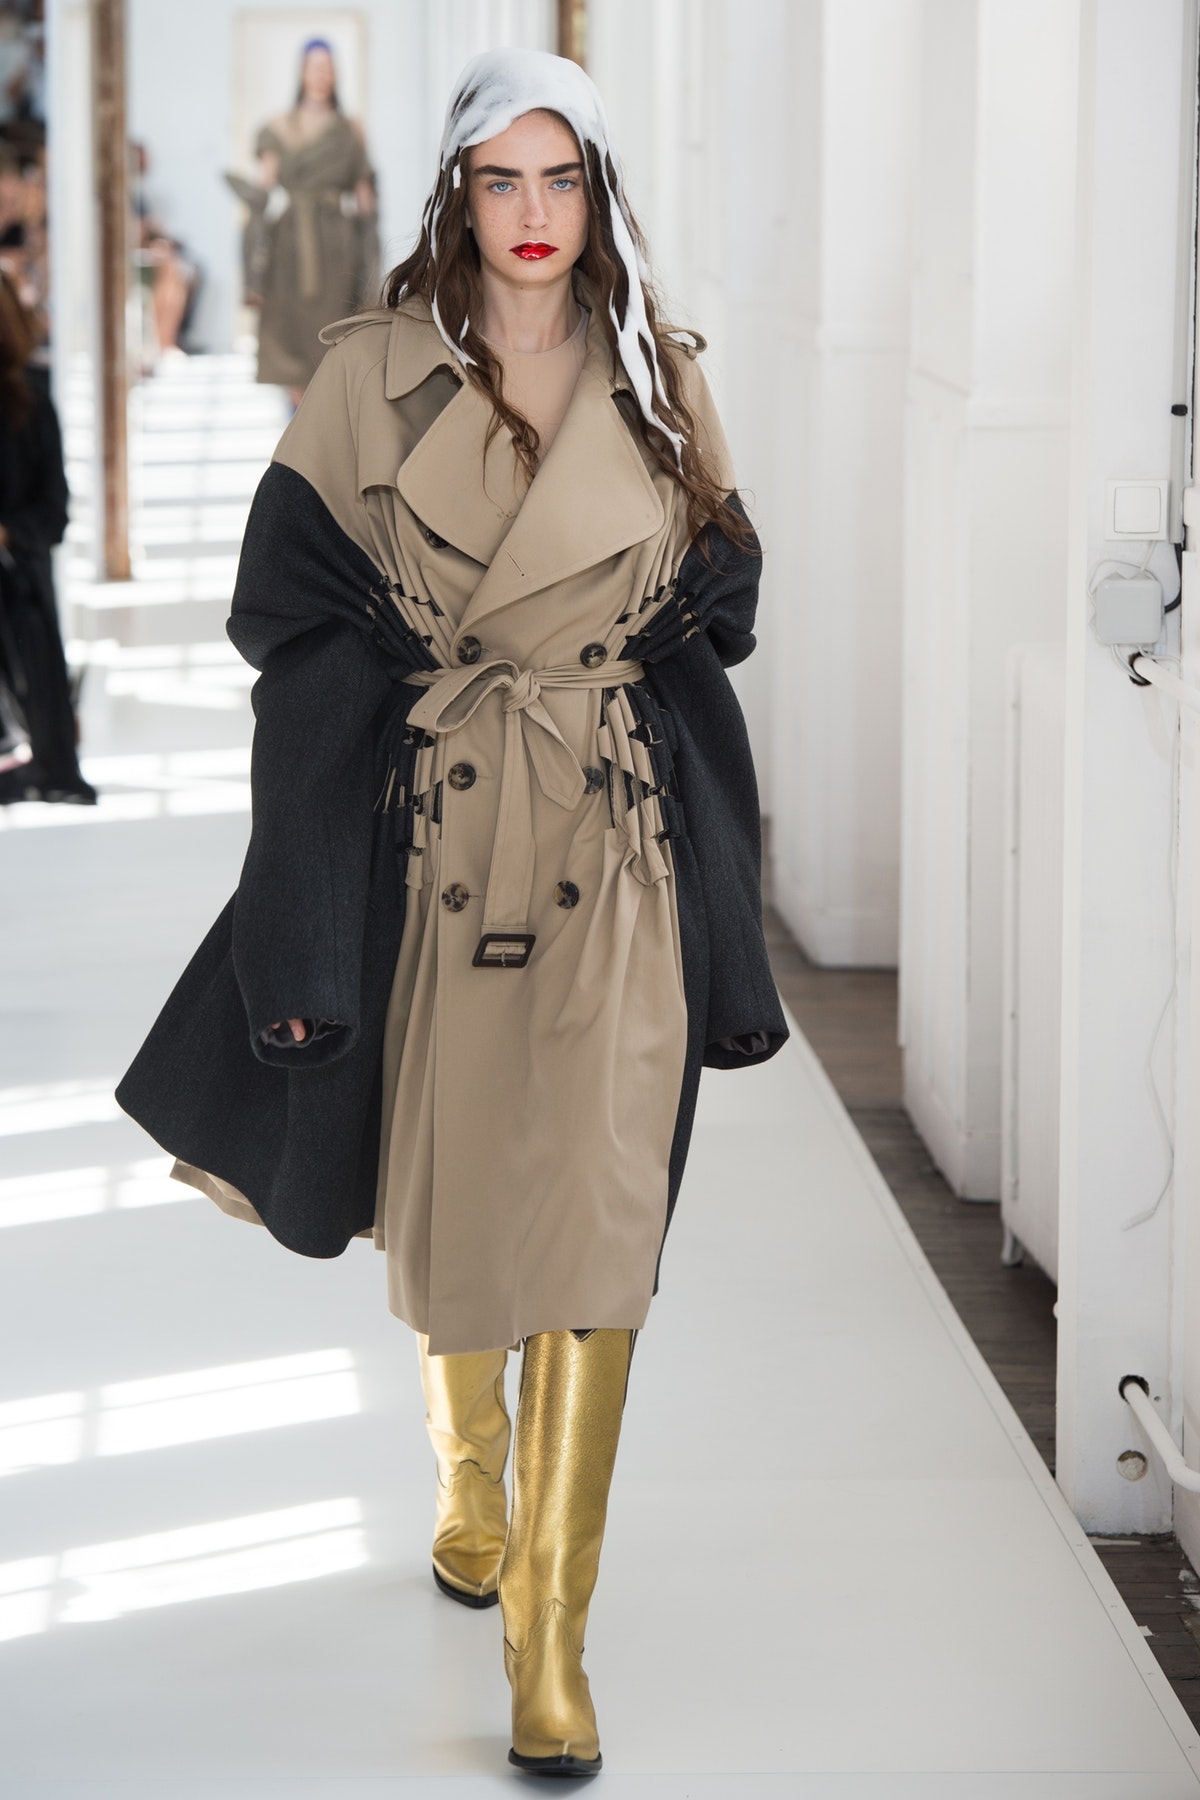 The traditional trench coat was reimagined in one of a number of contemporary styles.